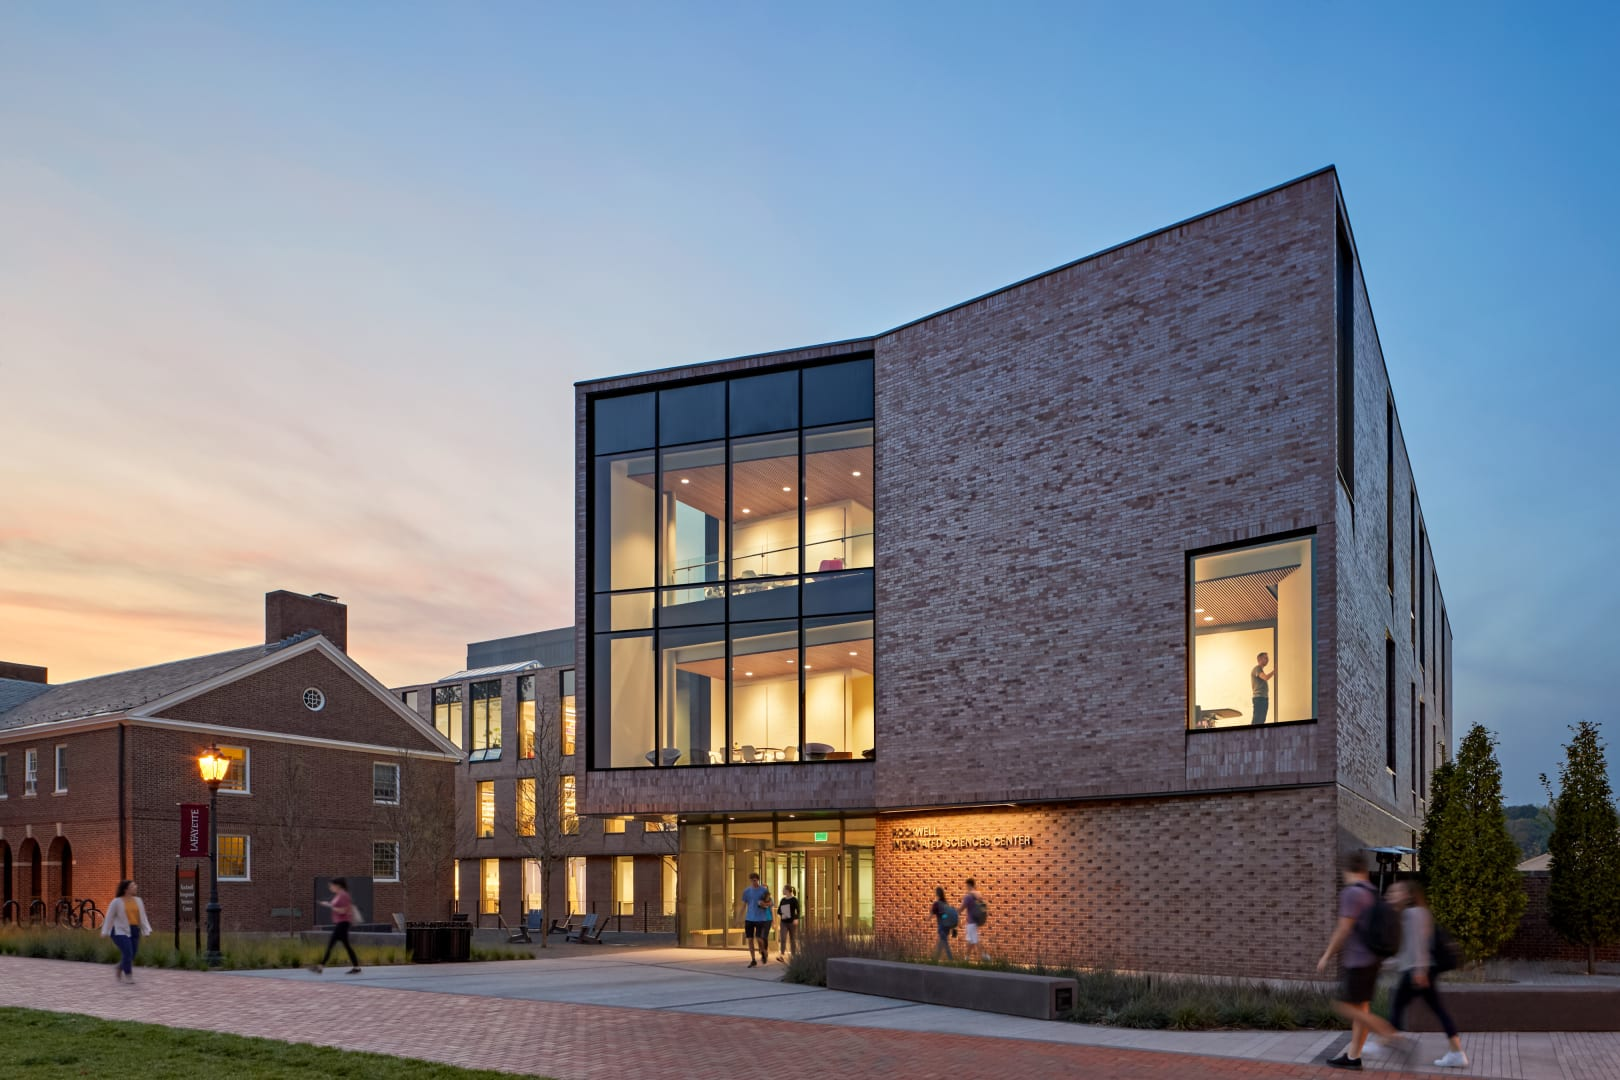 The front face of a campus science building. It's exterior marries traditional red brick architecture with large section of modern floor to ceiling windows.